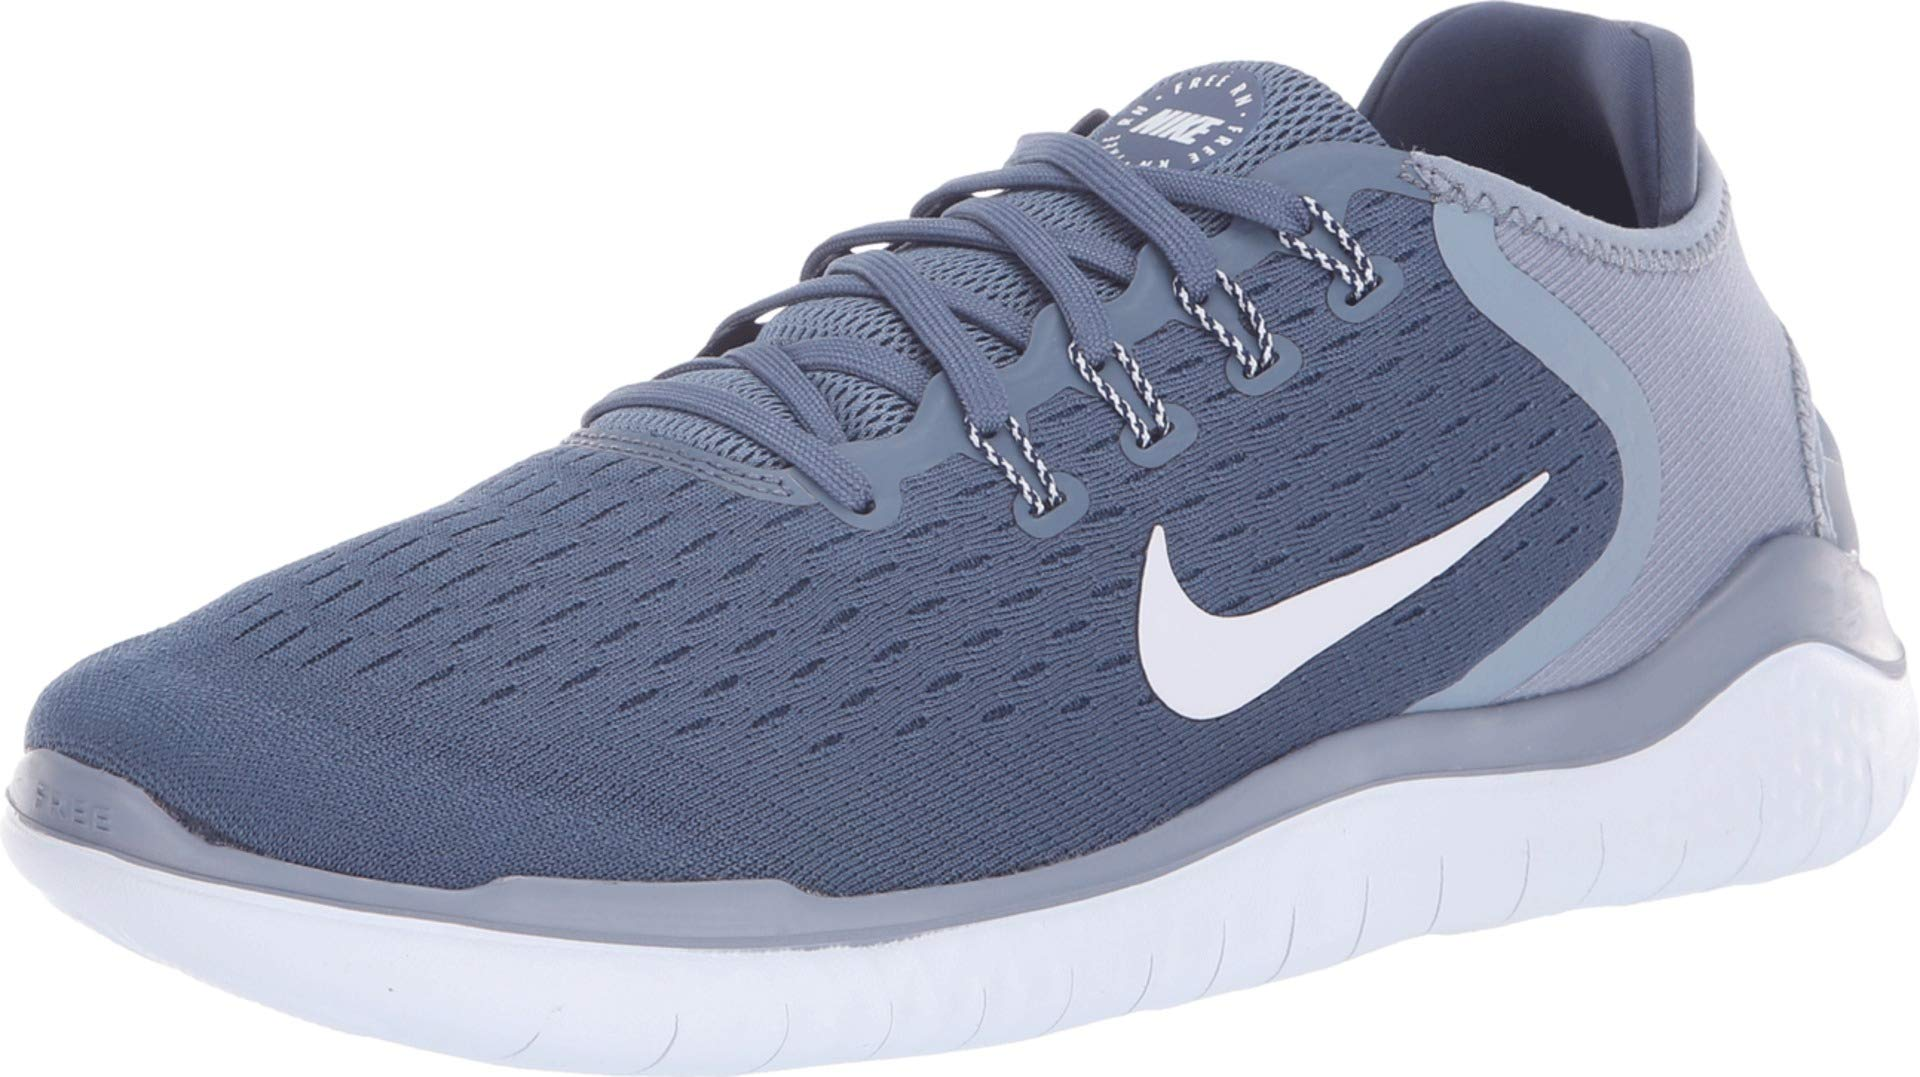 469ae450e03e Galleon - Nike Men s Free Rn 2018 Running Shoe (Diffused Blue Football Grey-Ashen  Slate)